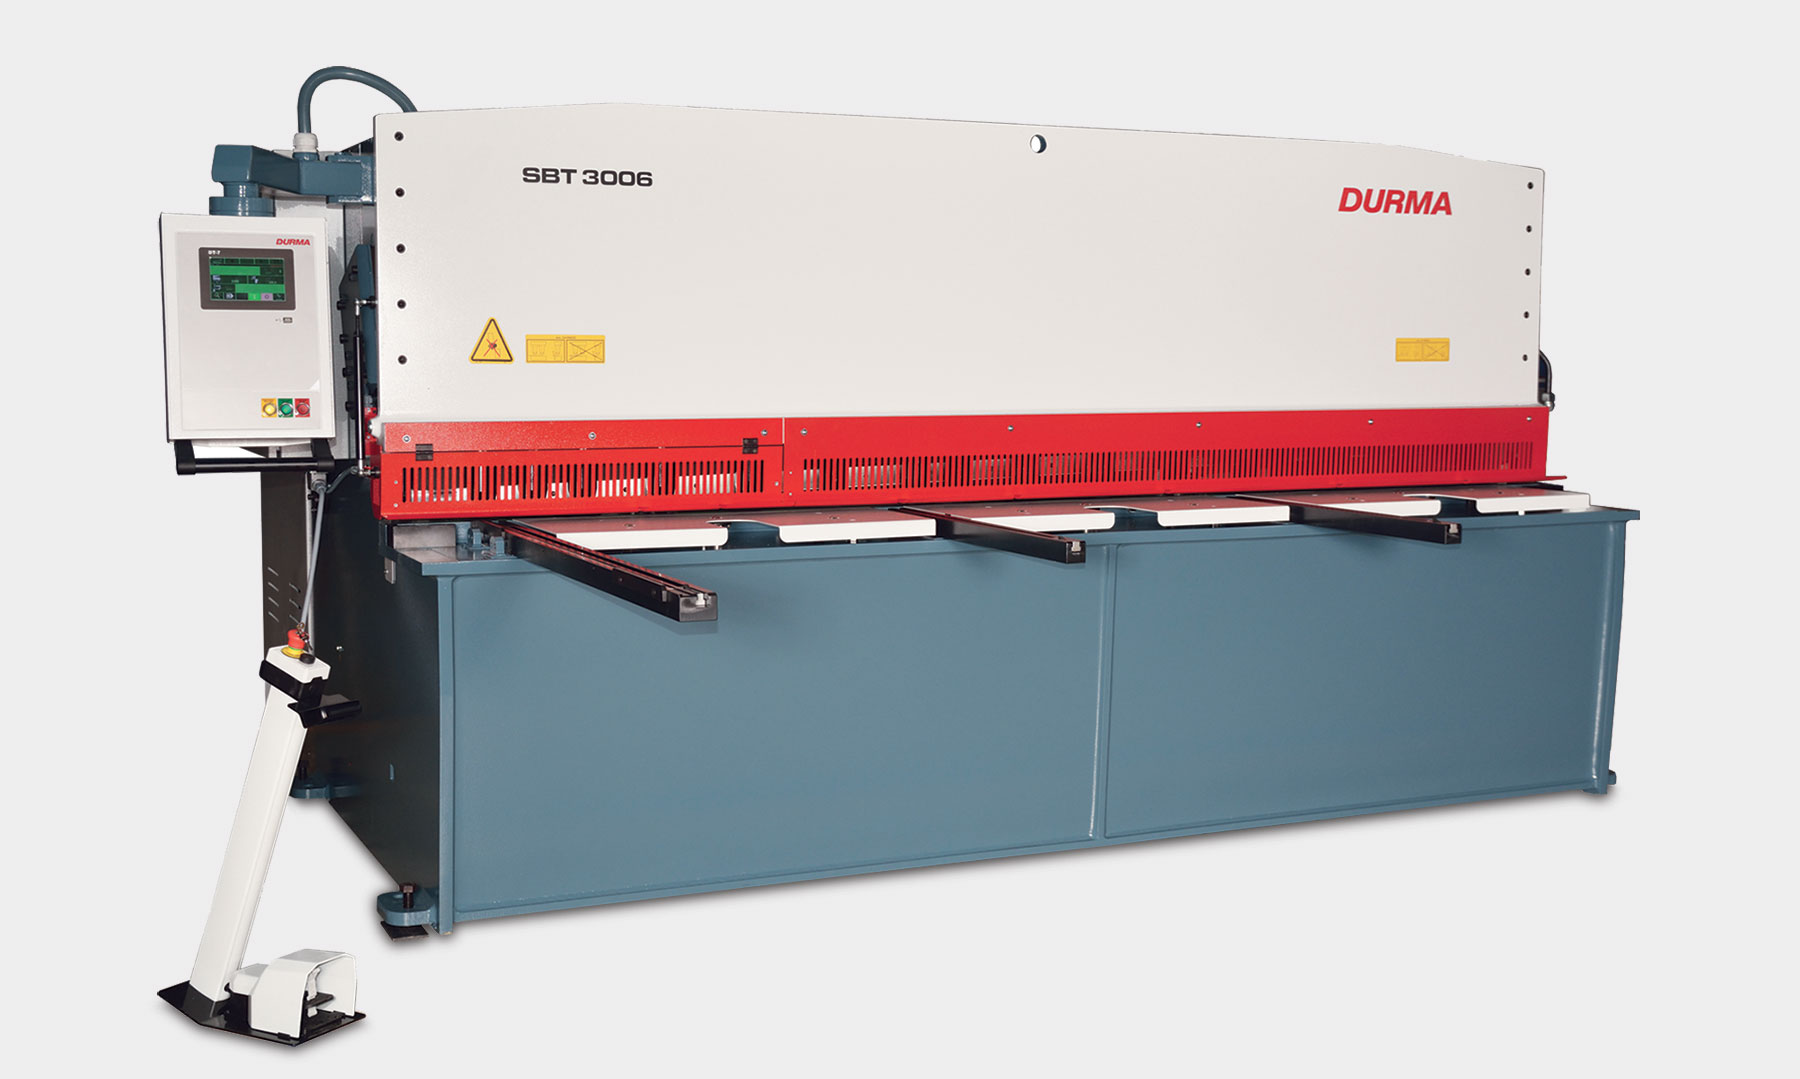 Durma Swing Beam Guillotine Durma SBT Series